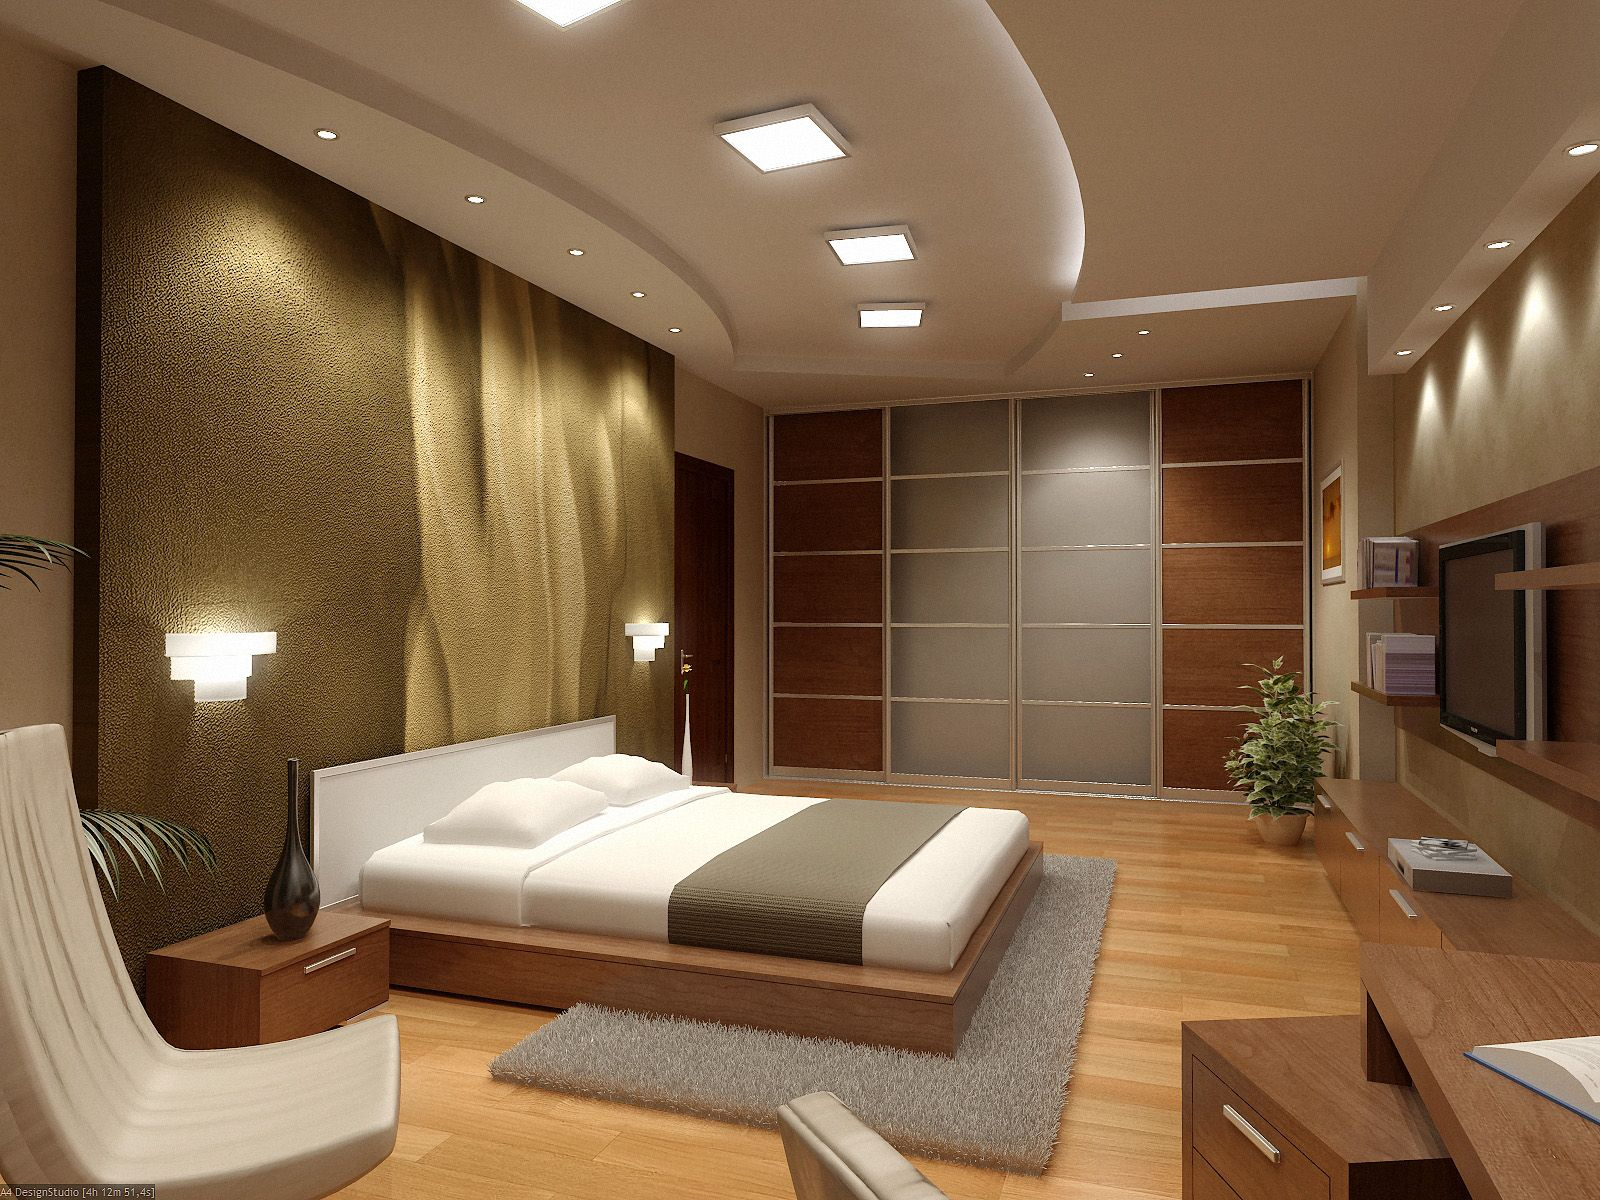 New home designs latest modern homes luxury interior for Modern bedroom interior designs